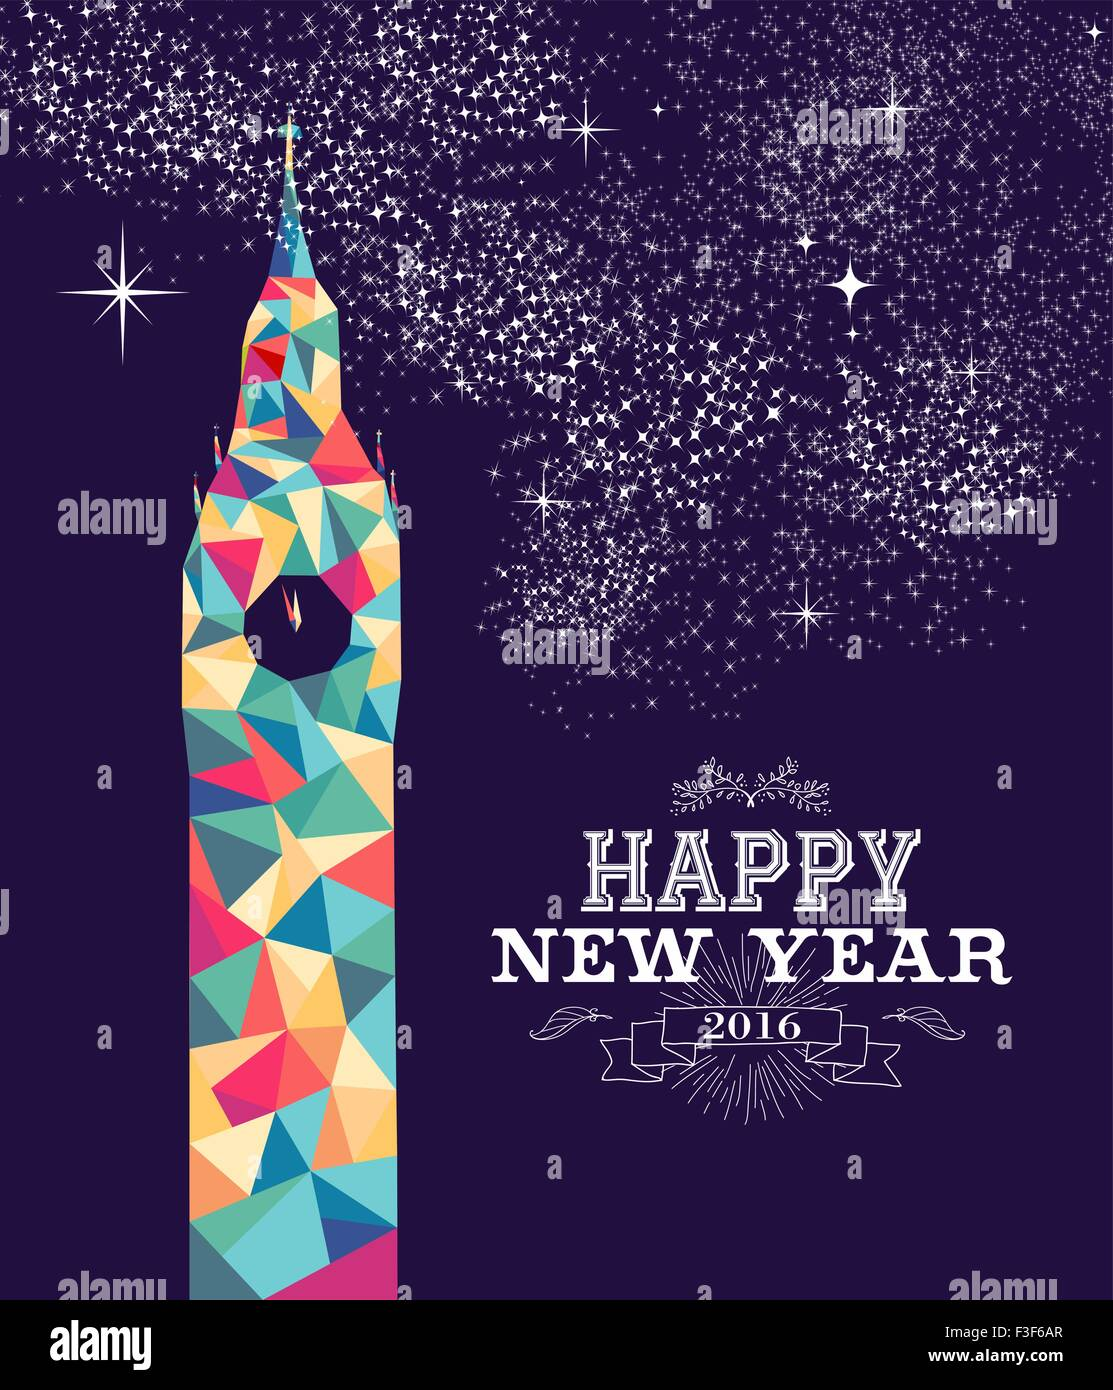 happy new year poster design